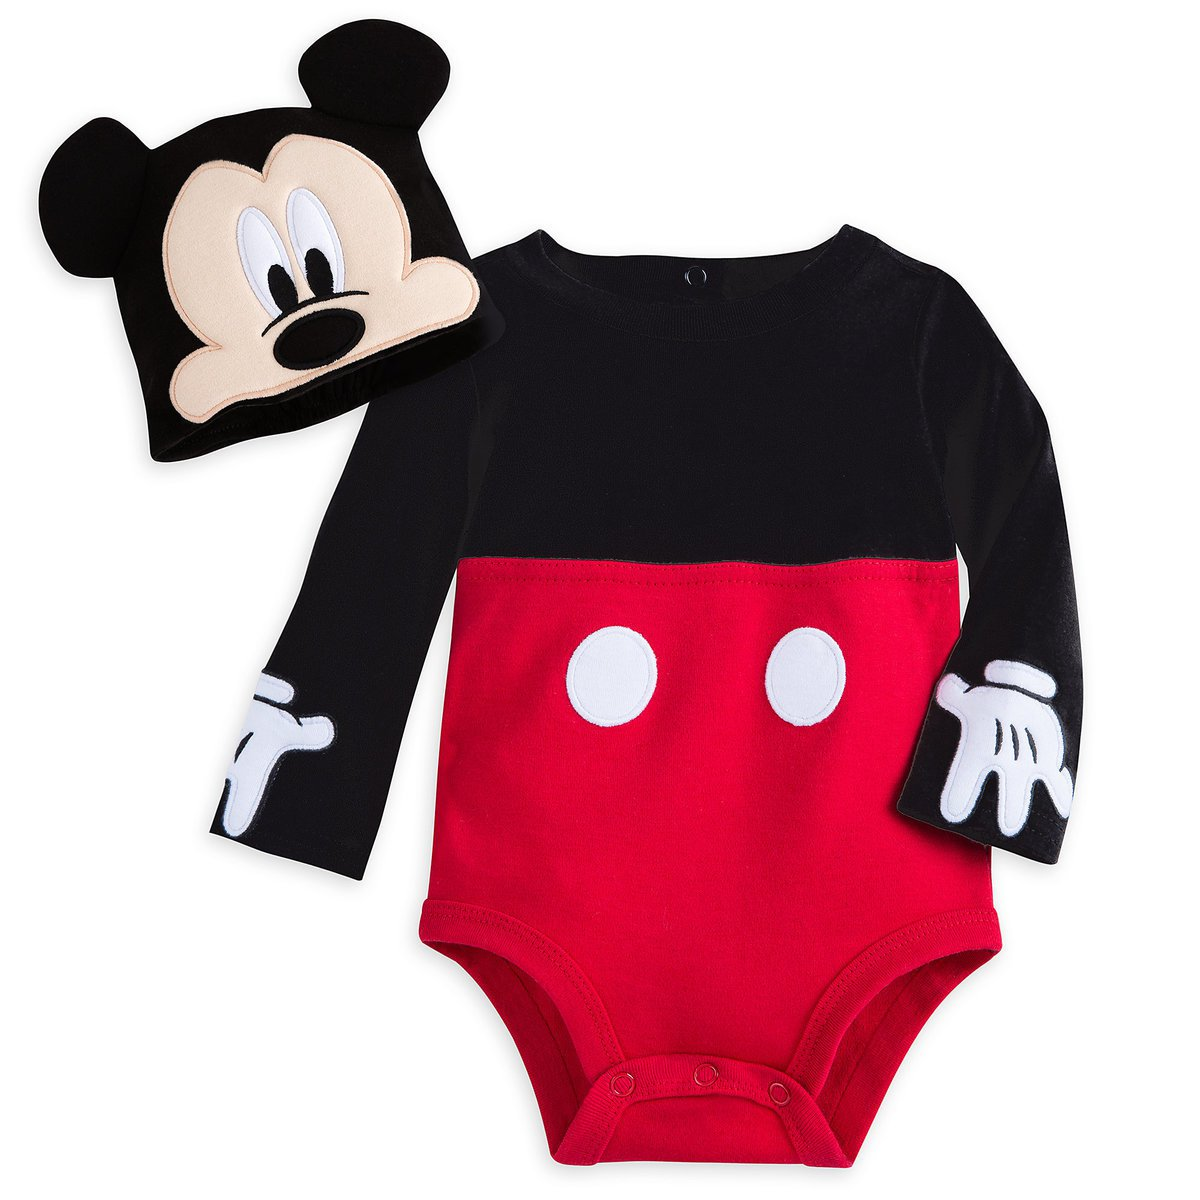 Disney Store Baby Bodysuit Costume Hat Mickey Mouse Size 3-6 Months